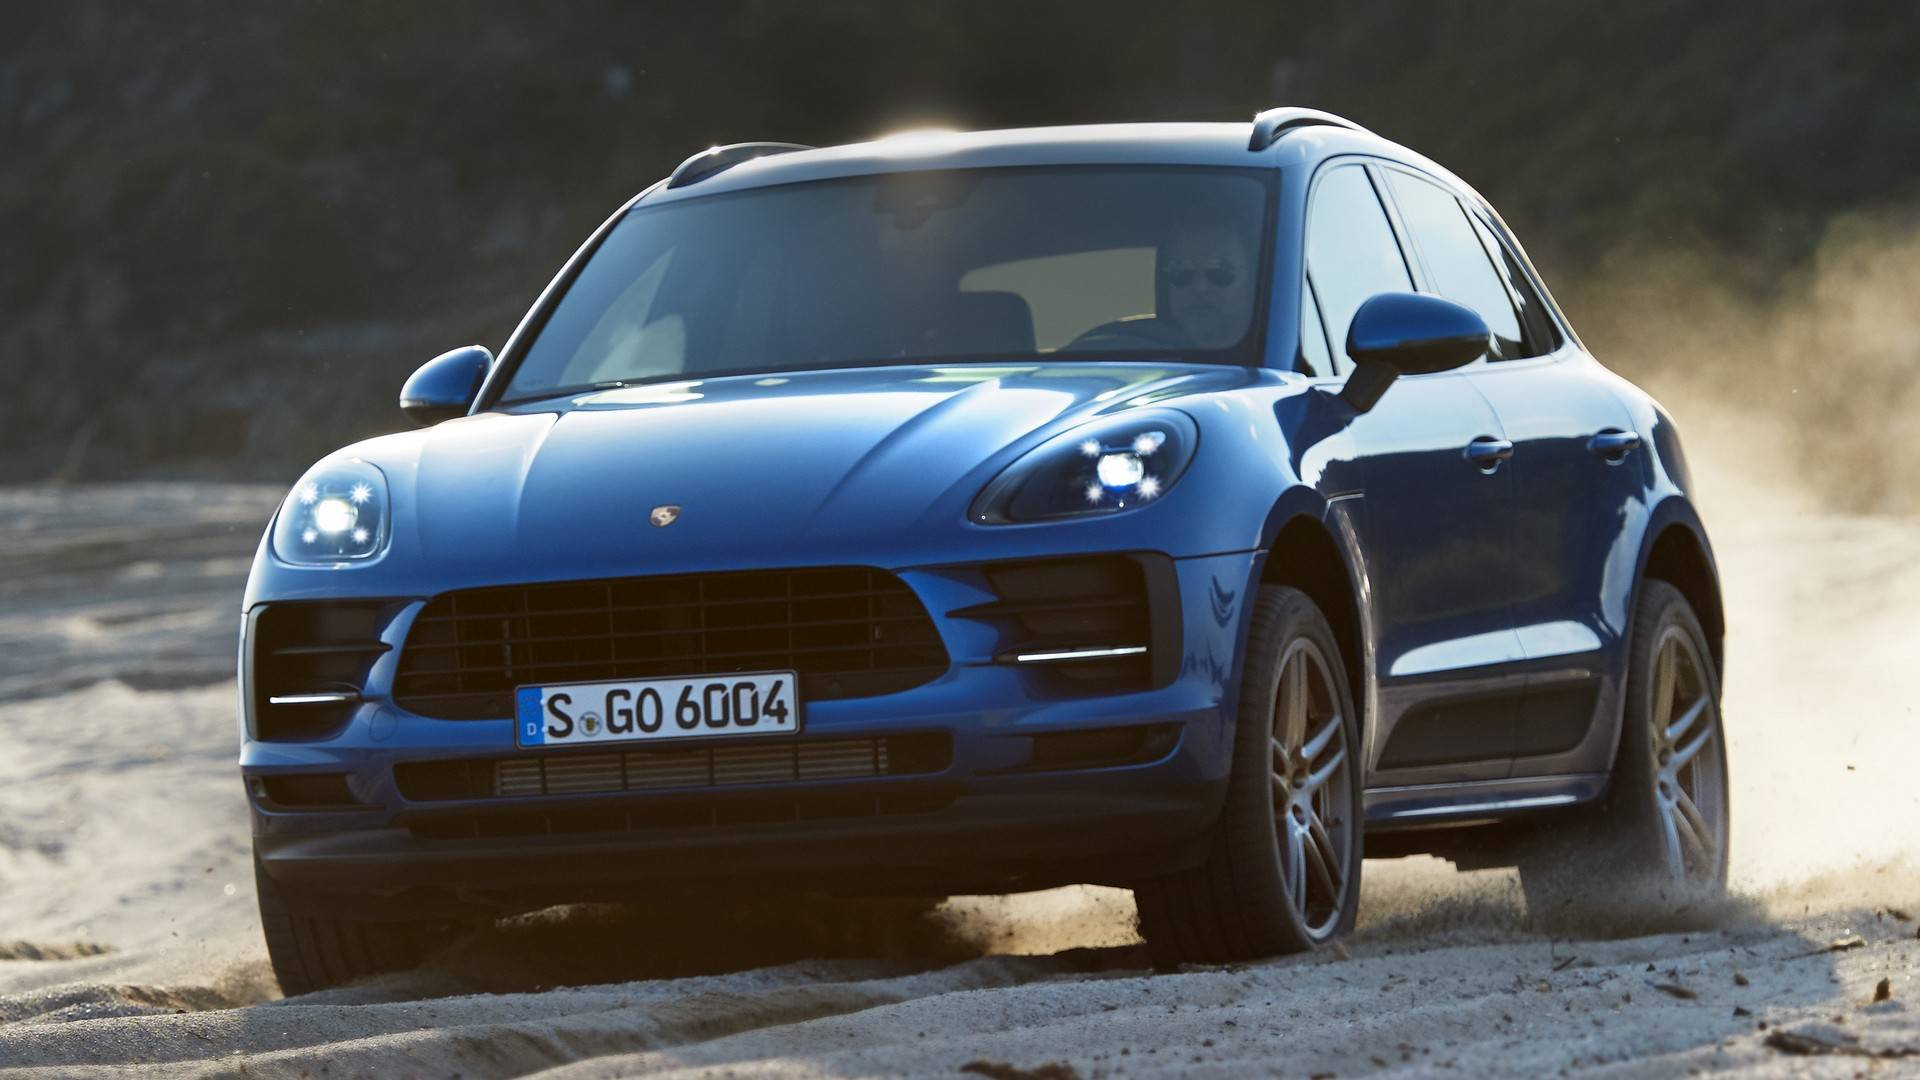 2019 porsche macan for leasebuy  autolux sales and leasing